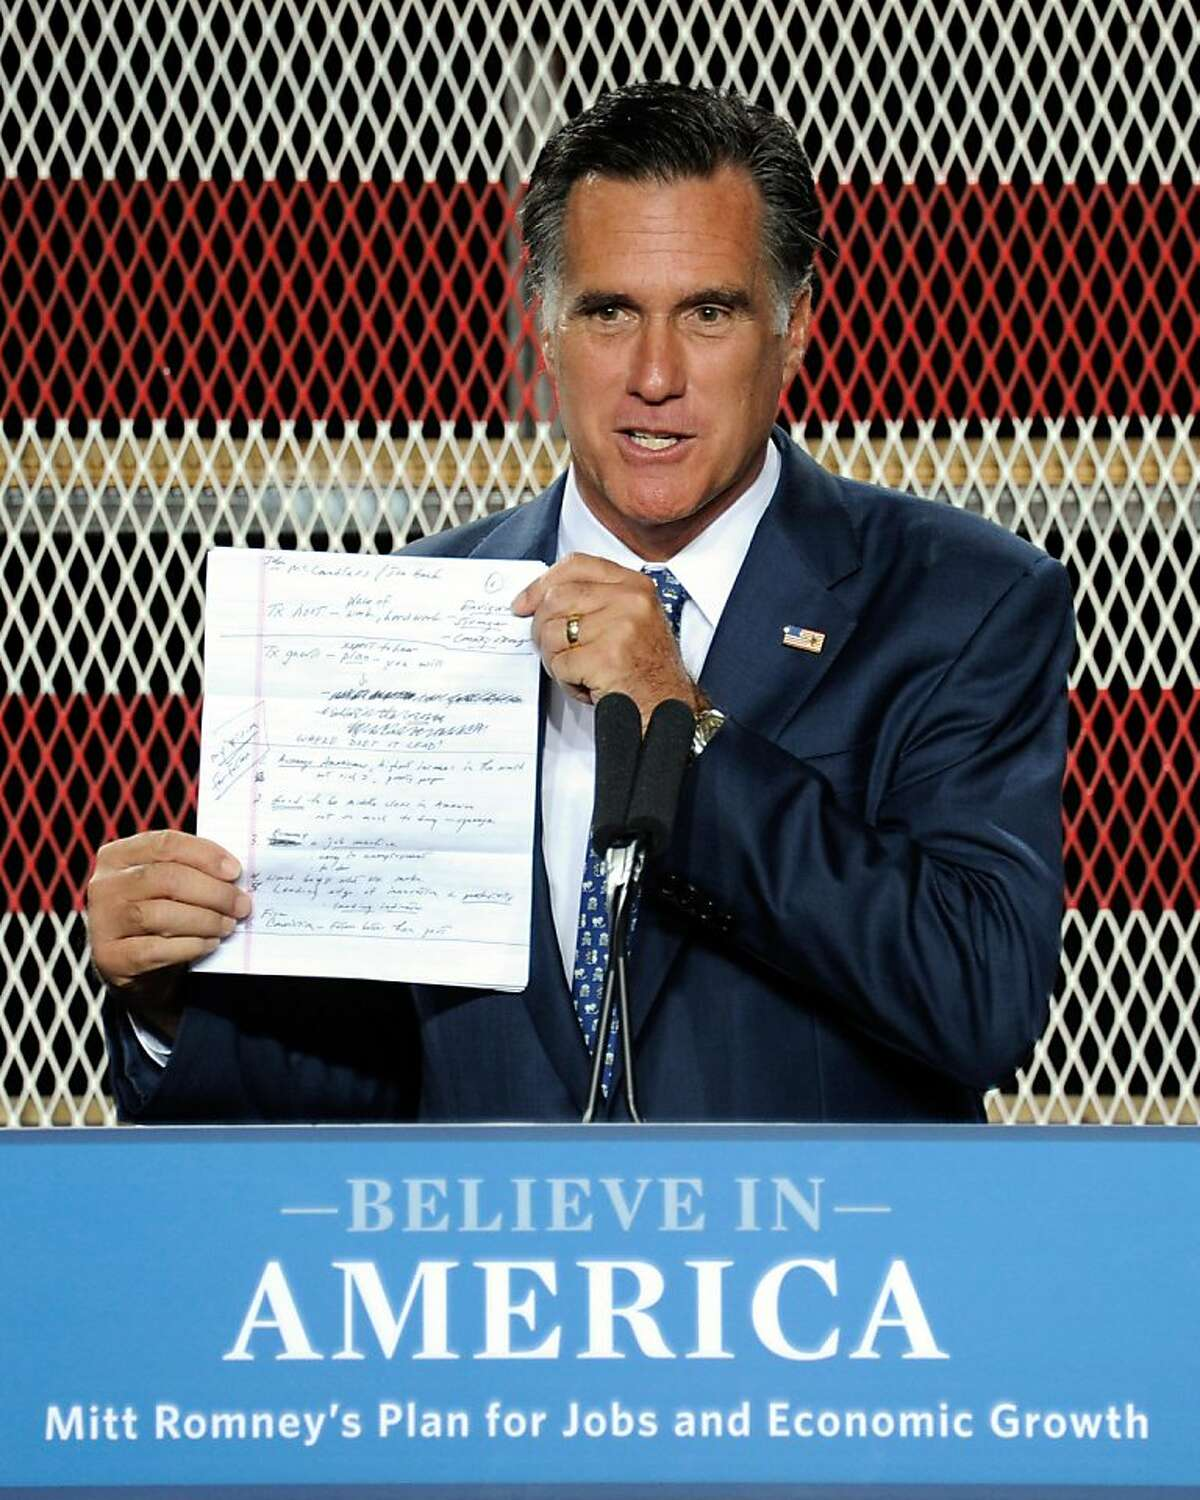 NORTH LAS VEGAS, NV - SEPTEMBER 06: Former Massachusetts Gov. and Republican presidential hopeful Mitt Romney holds up his notes as he speaks about his plan to increase jobs and boost the U.S. economy at McCandless International Trucks, Inc. September 6, 2011 in North Las Vegas, Nevada. Romney, who won the GOP presidential caucuses in Nevada in 2008, is introducing his plan two days ahead of President Barack Obama's scheduled jobs proposal speech to Congress. (Photo by Ethan Miller/Getty Images)